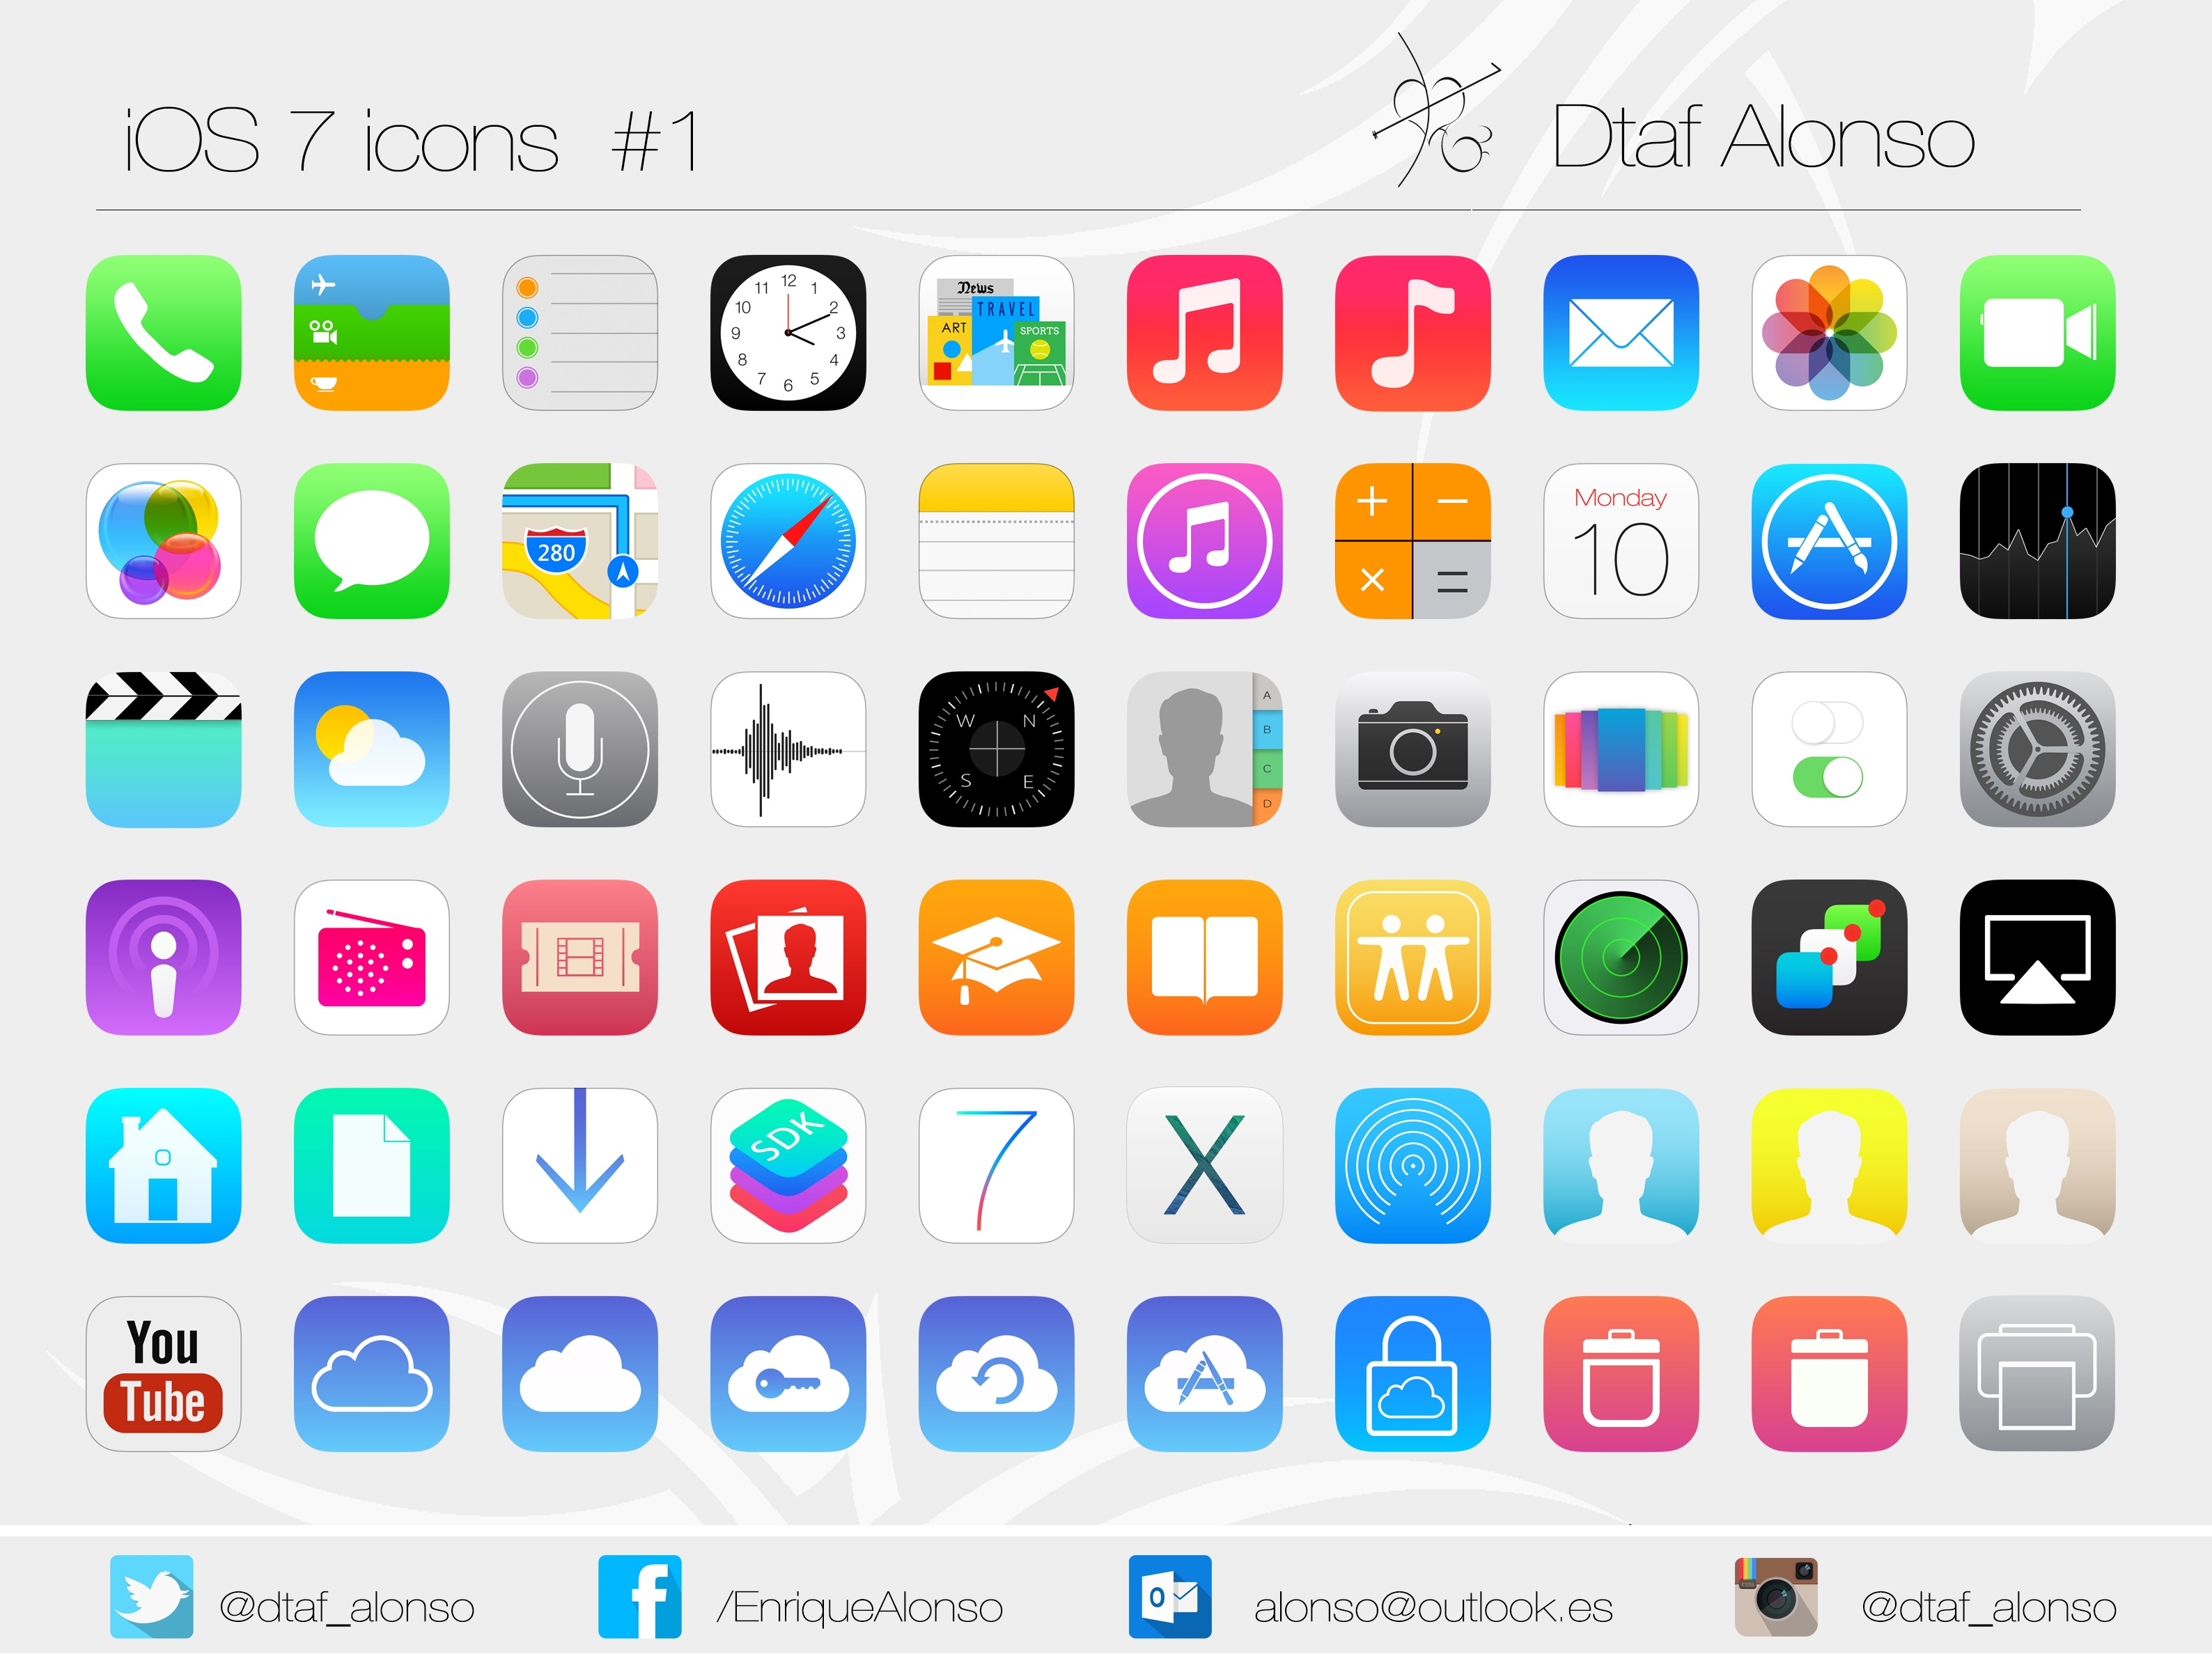 IPhone Icons A Guide to the Most Common iPhone Symbols & Their Meanings